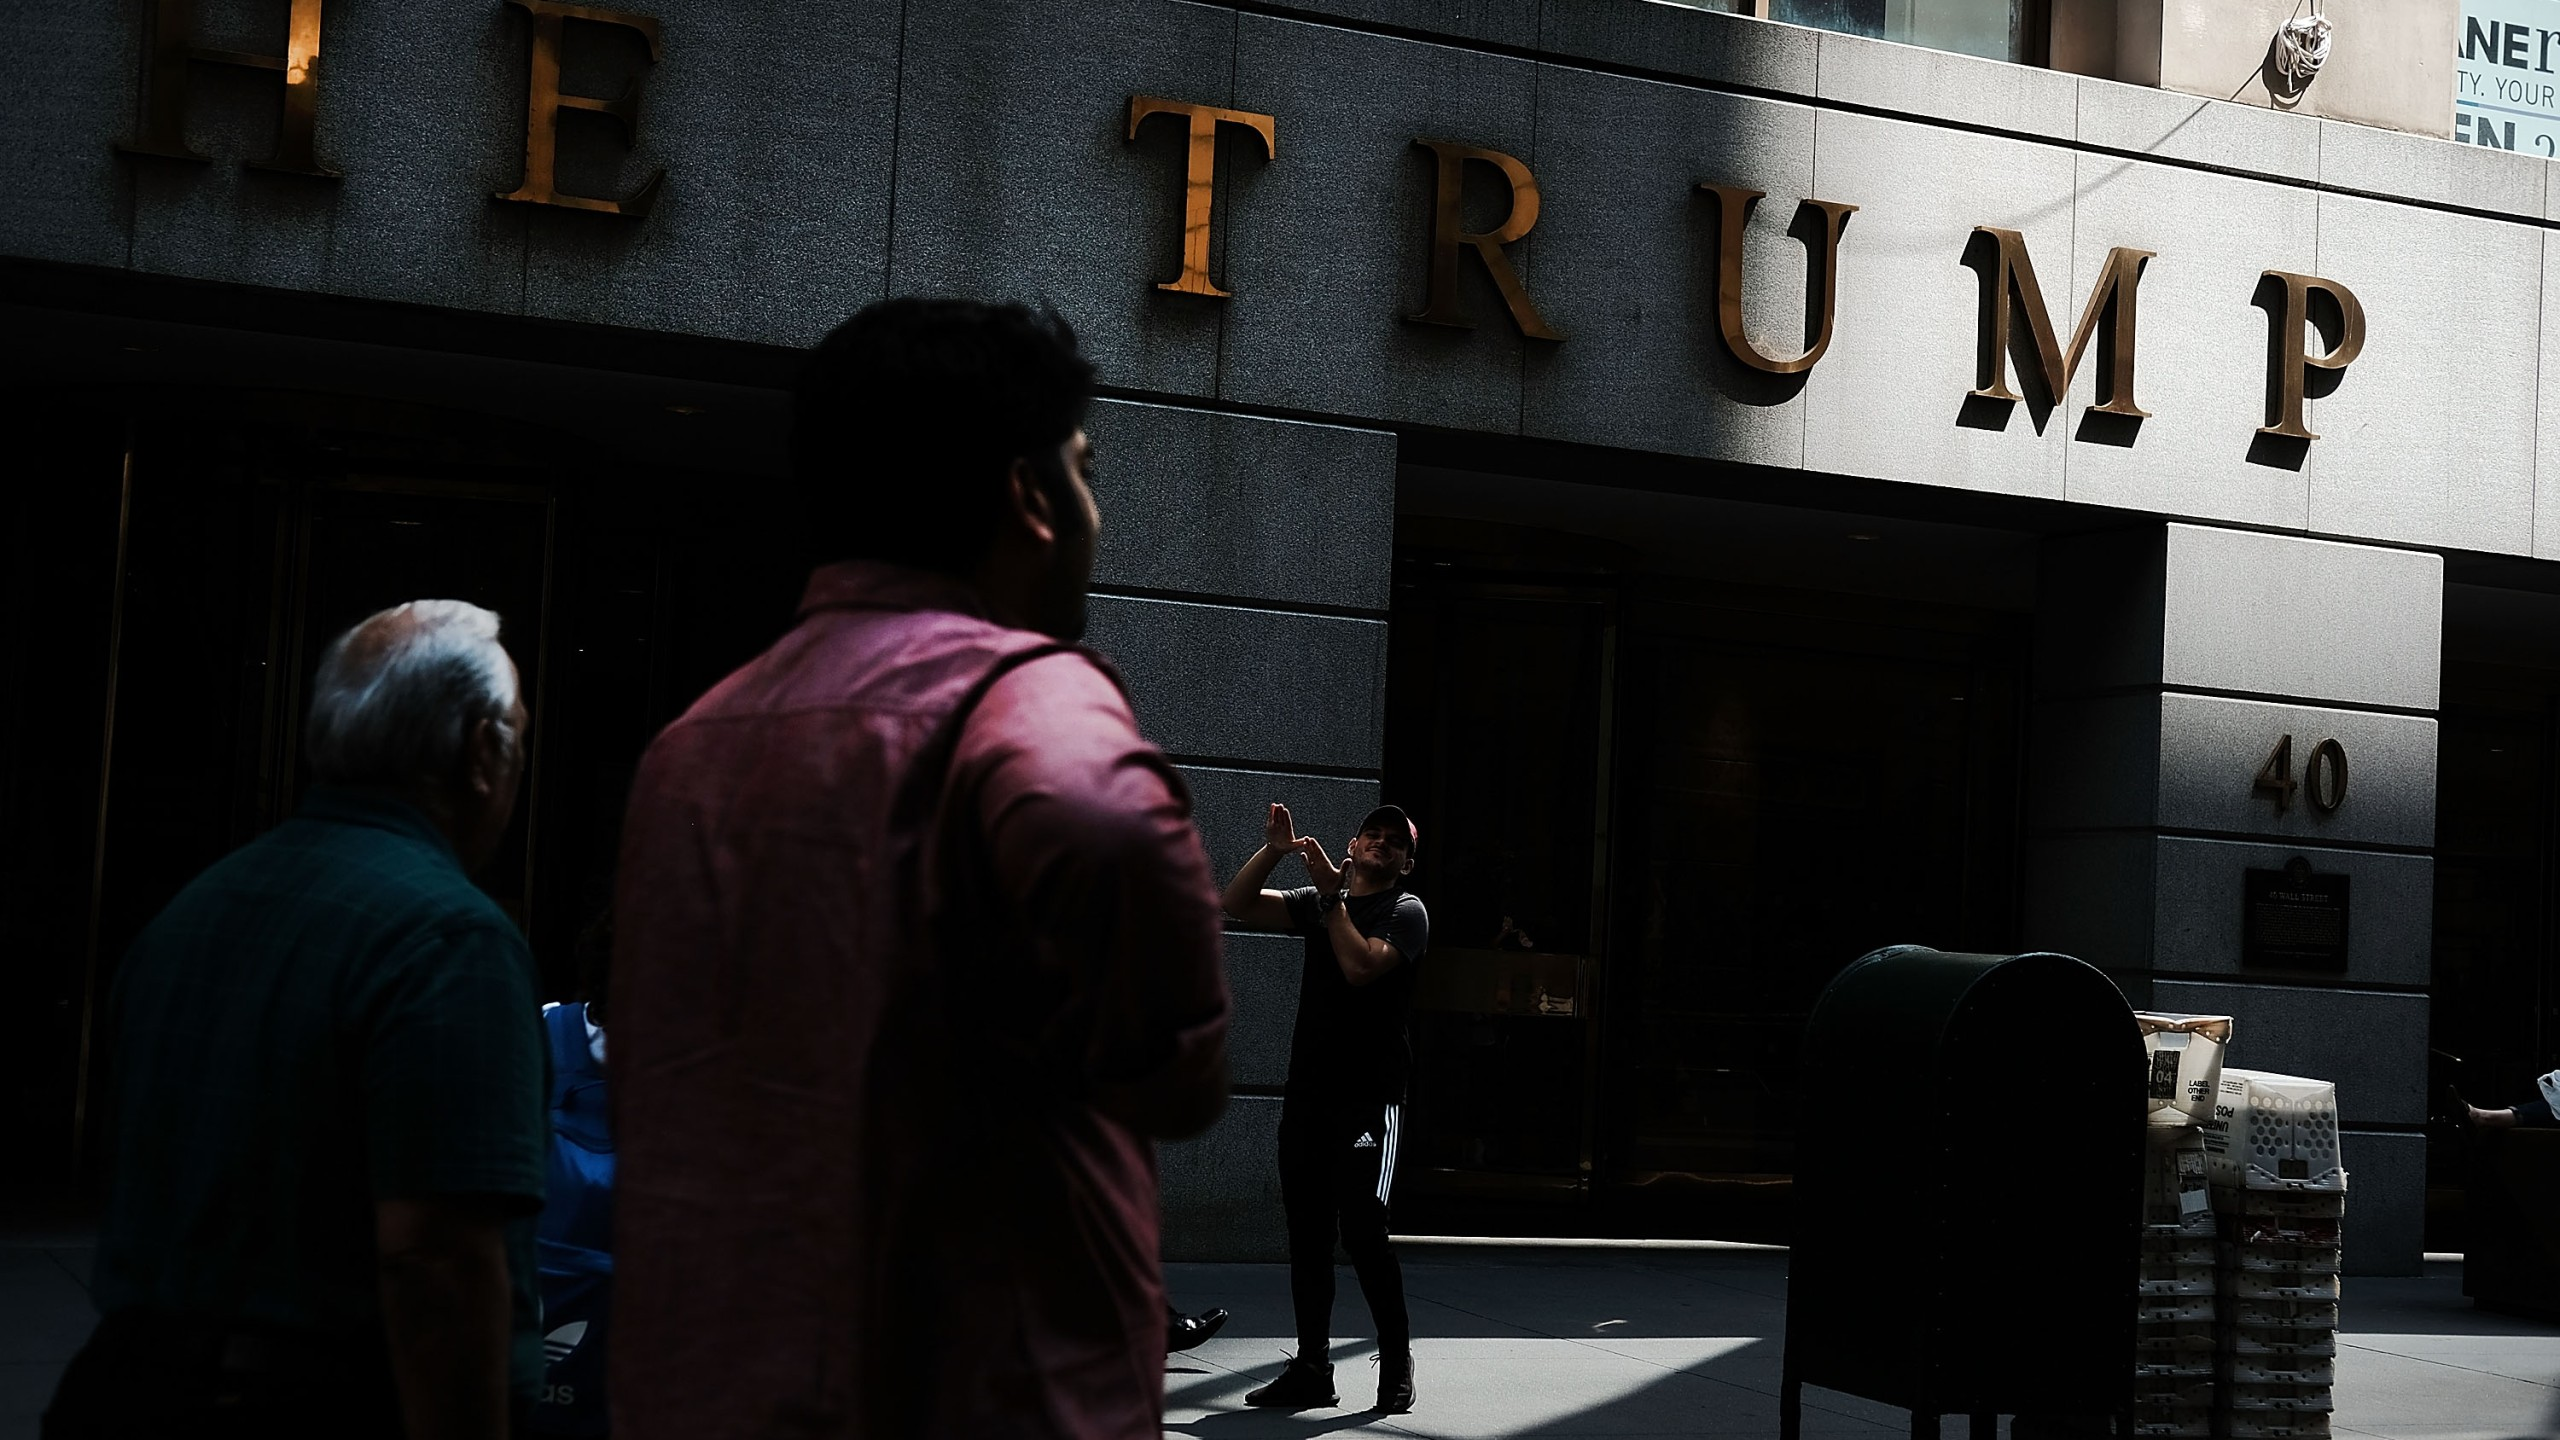 People walk outside of a building owned by President Donald Trump in Manhattan on August 24, 2018 in New York City. (Credit: Spencer Platt/Getty Images)